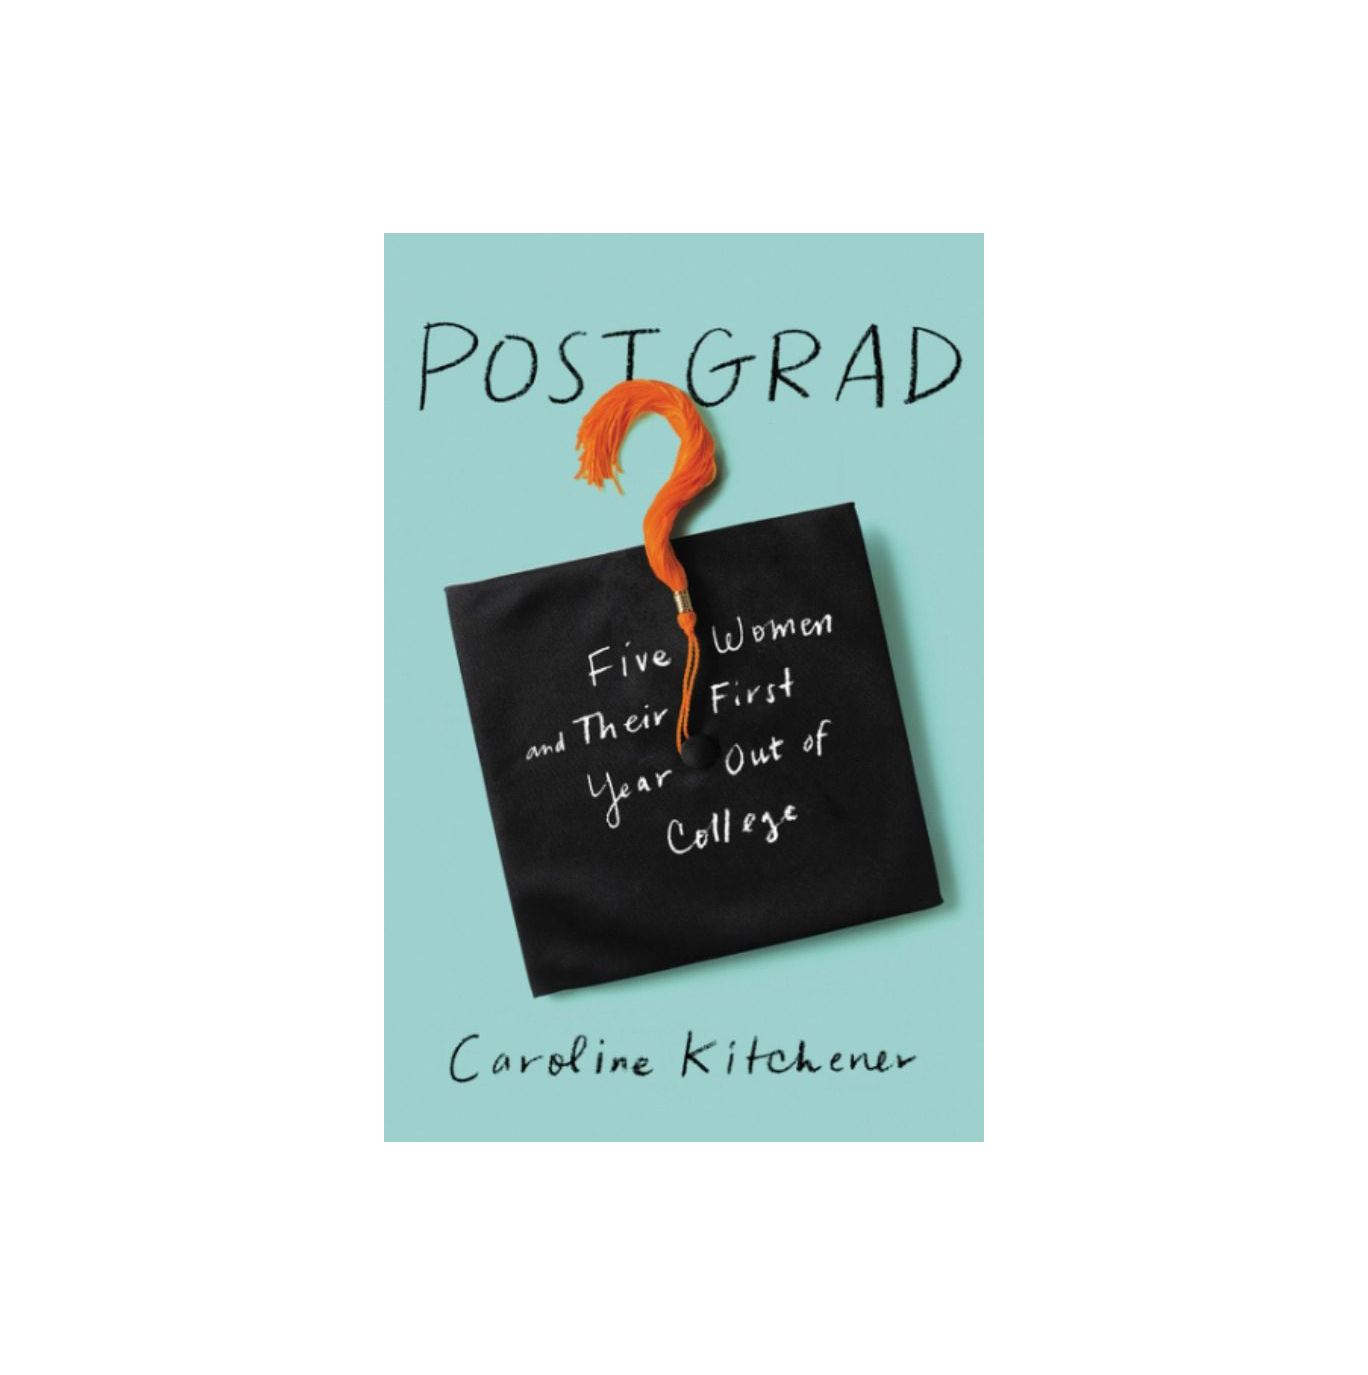 Post Grad: Five Women and Their First Year Out of College, by Caroline Kitchener